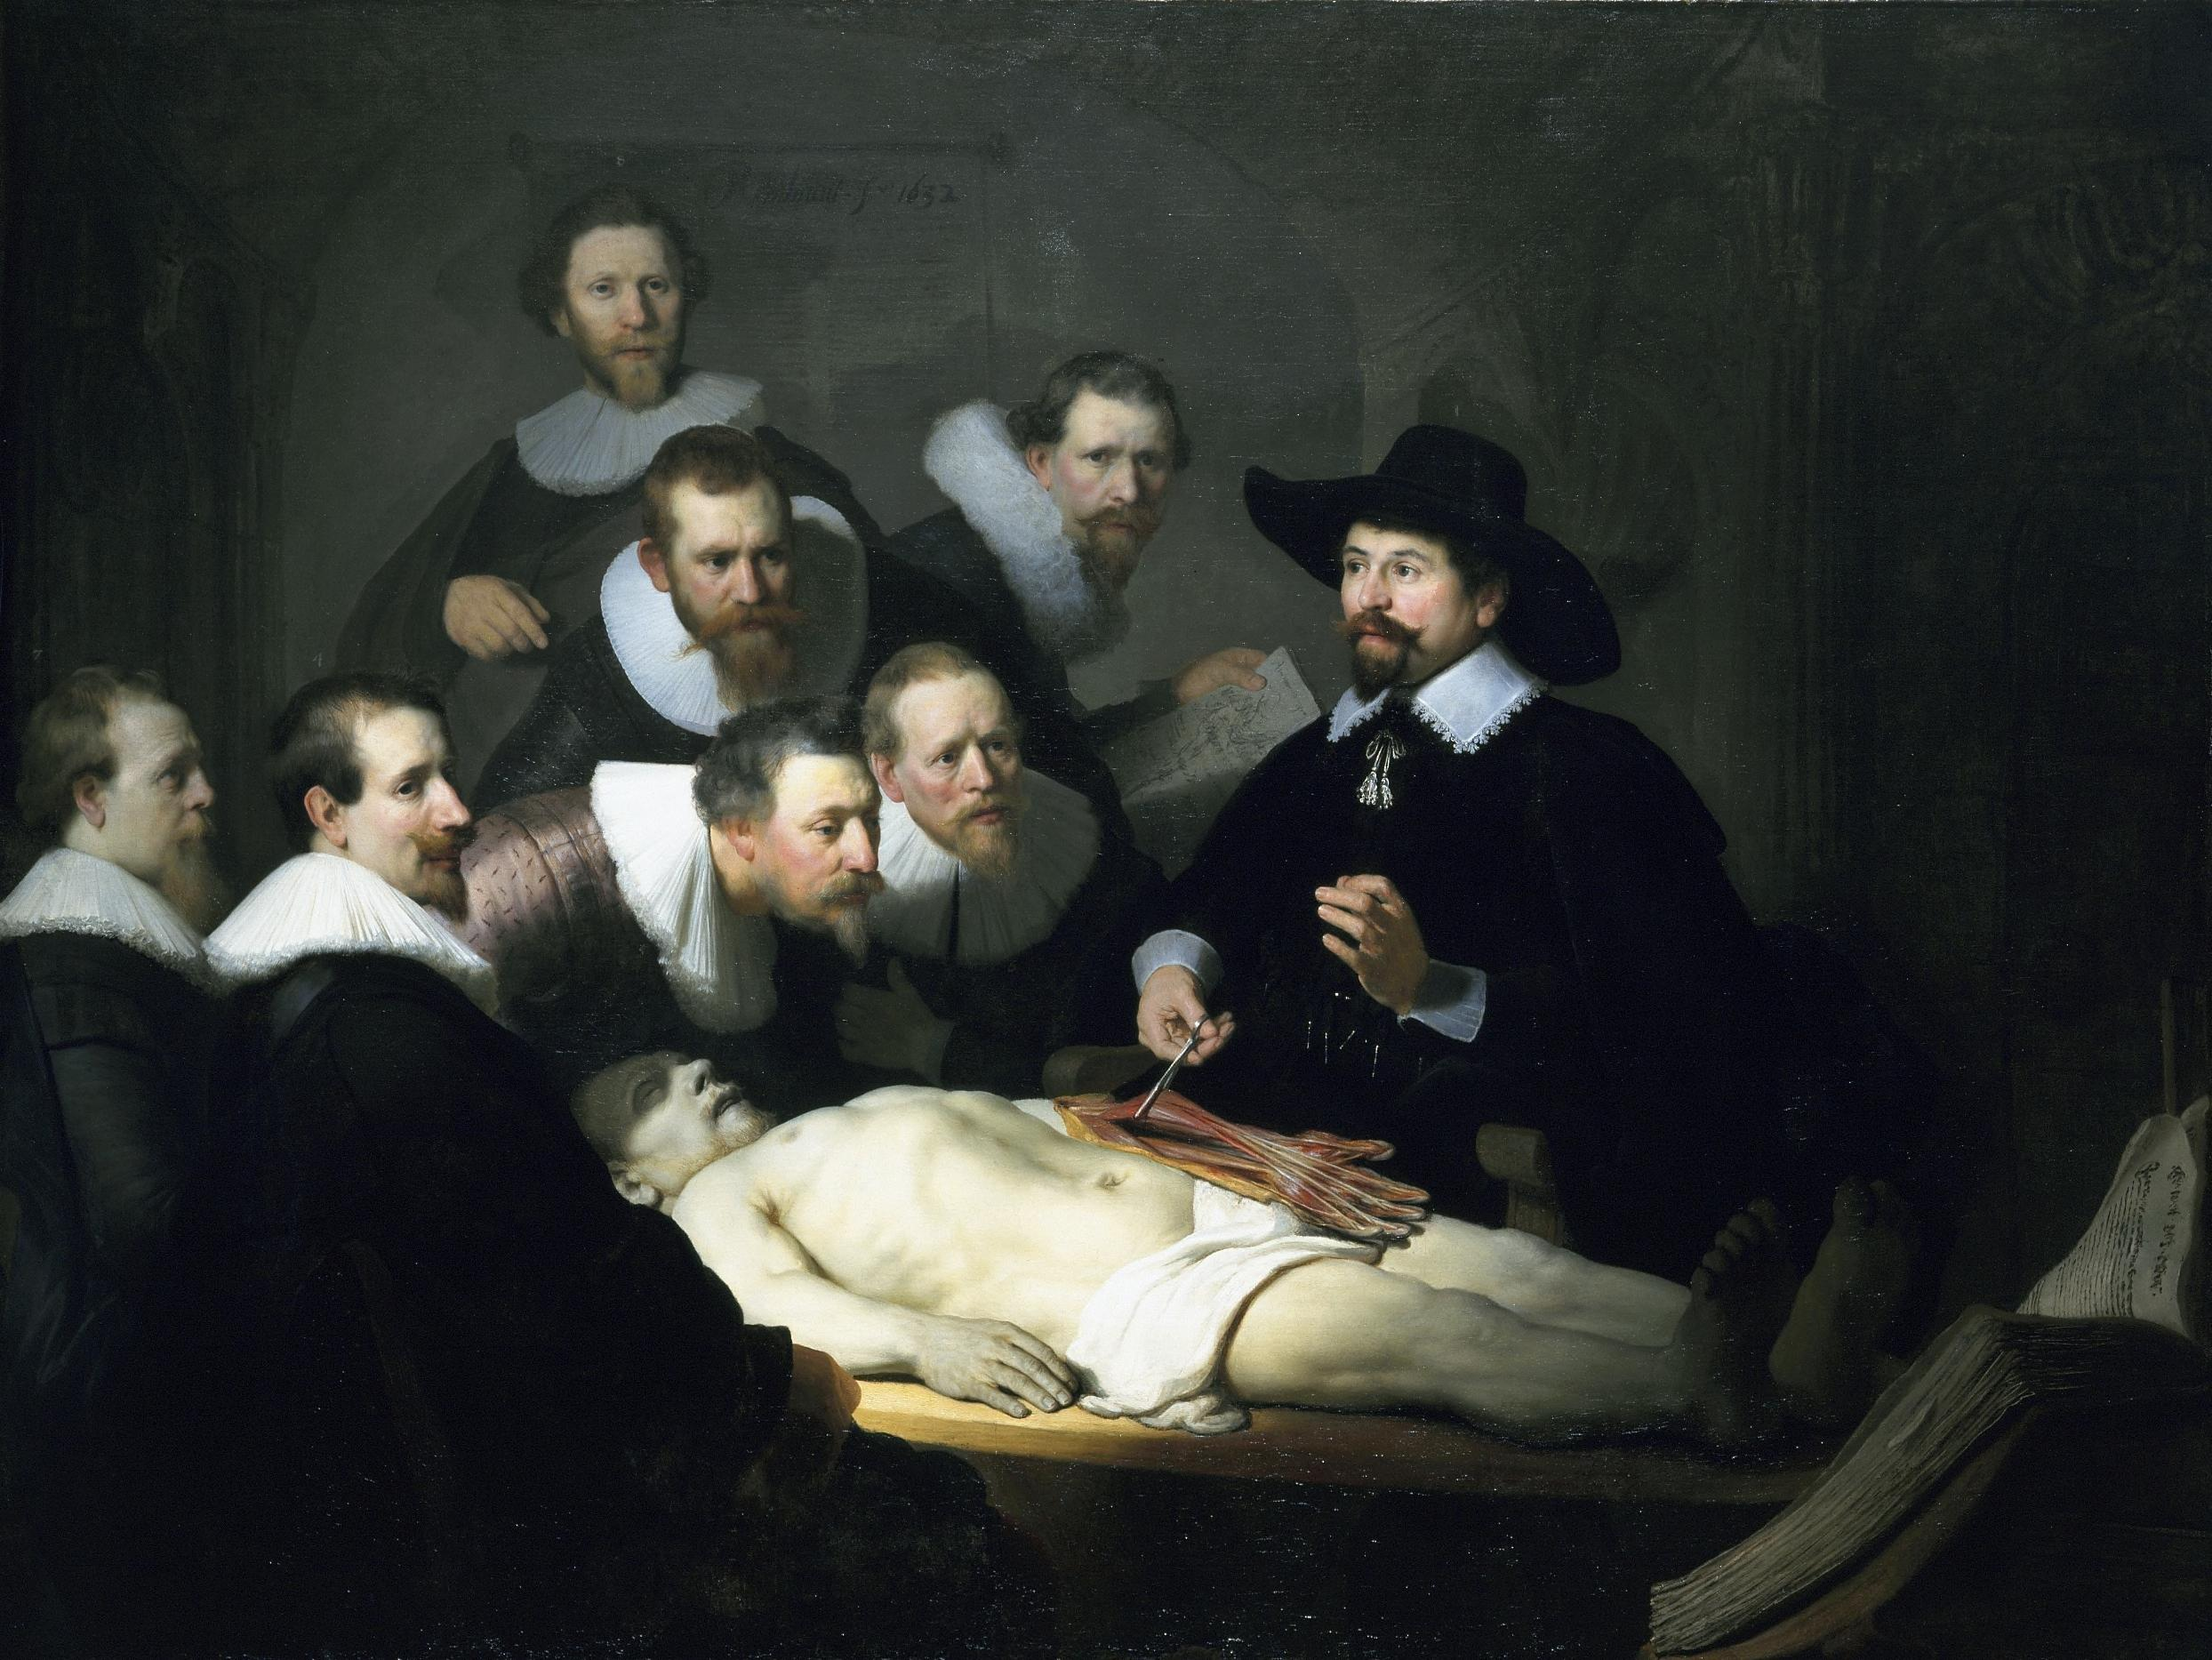 Rembrandt – The Anatomy lesson of Dr. Nicolaes Tulp – Analysis | CAU